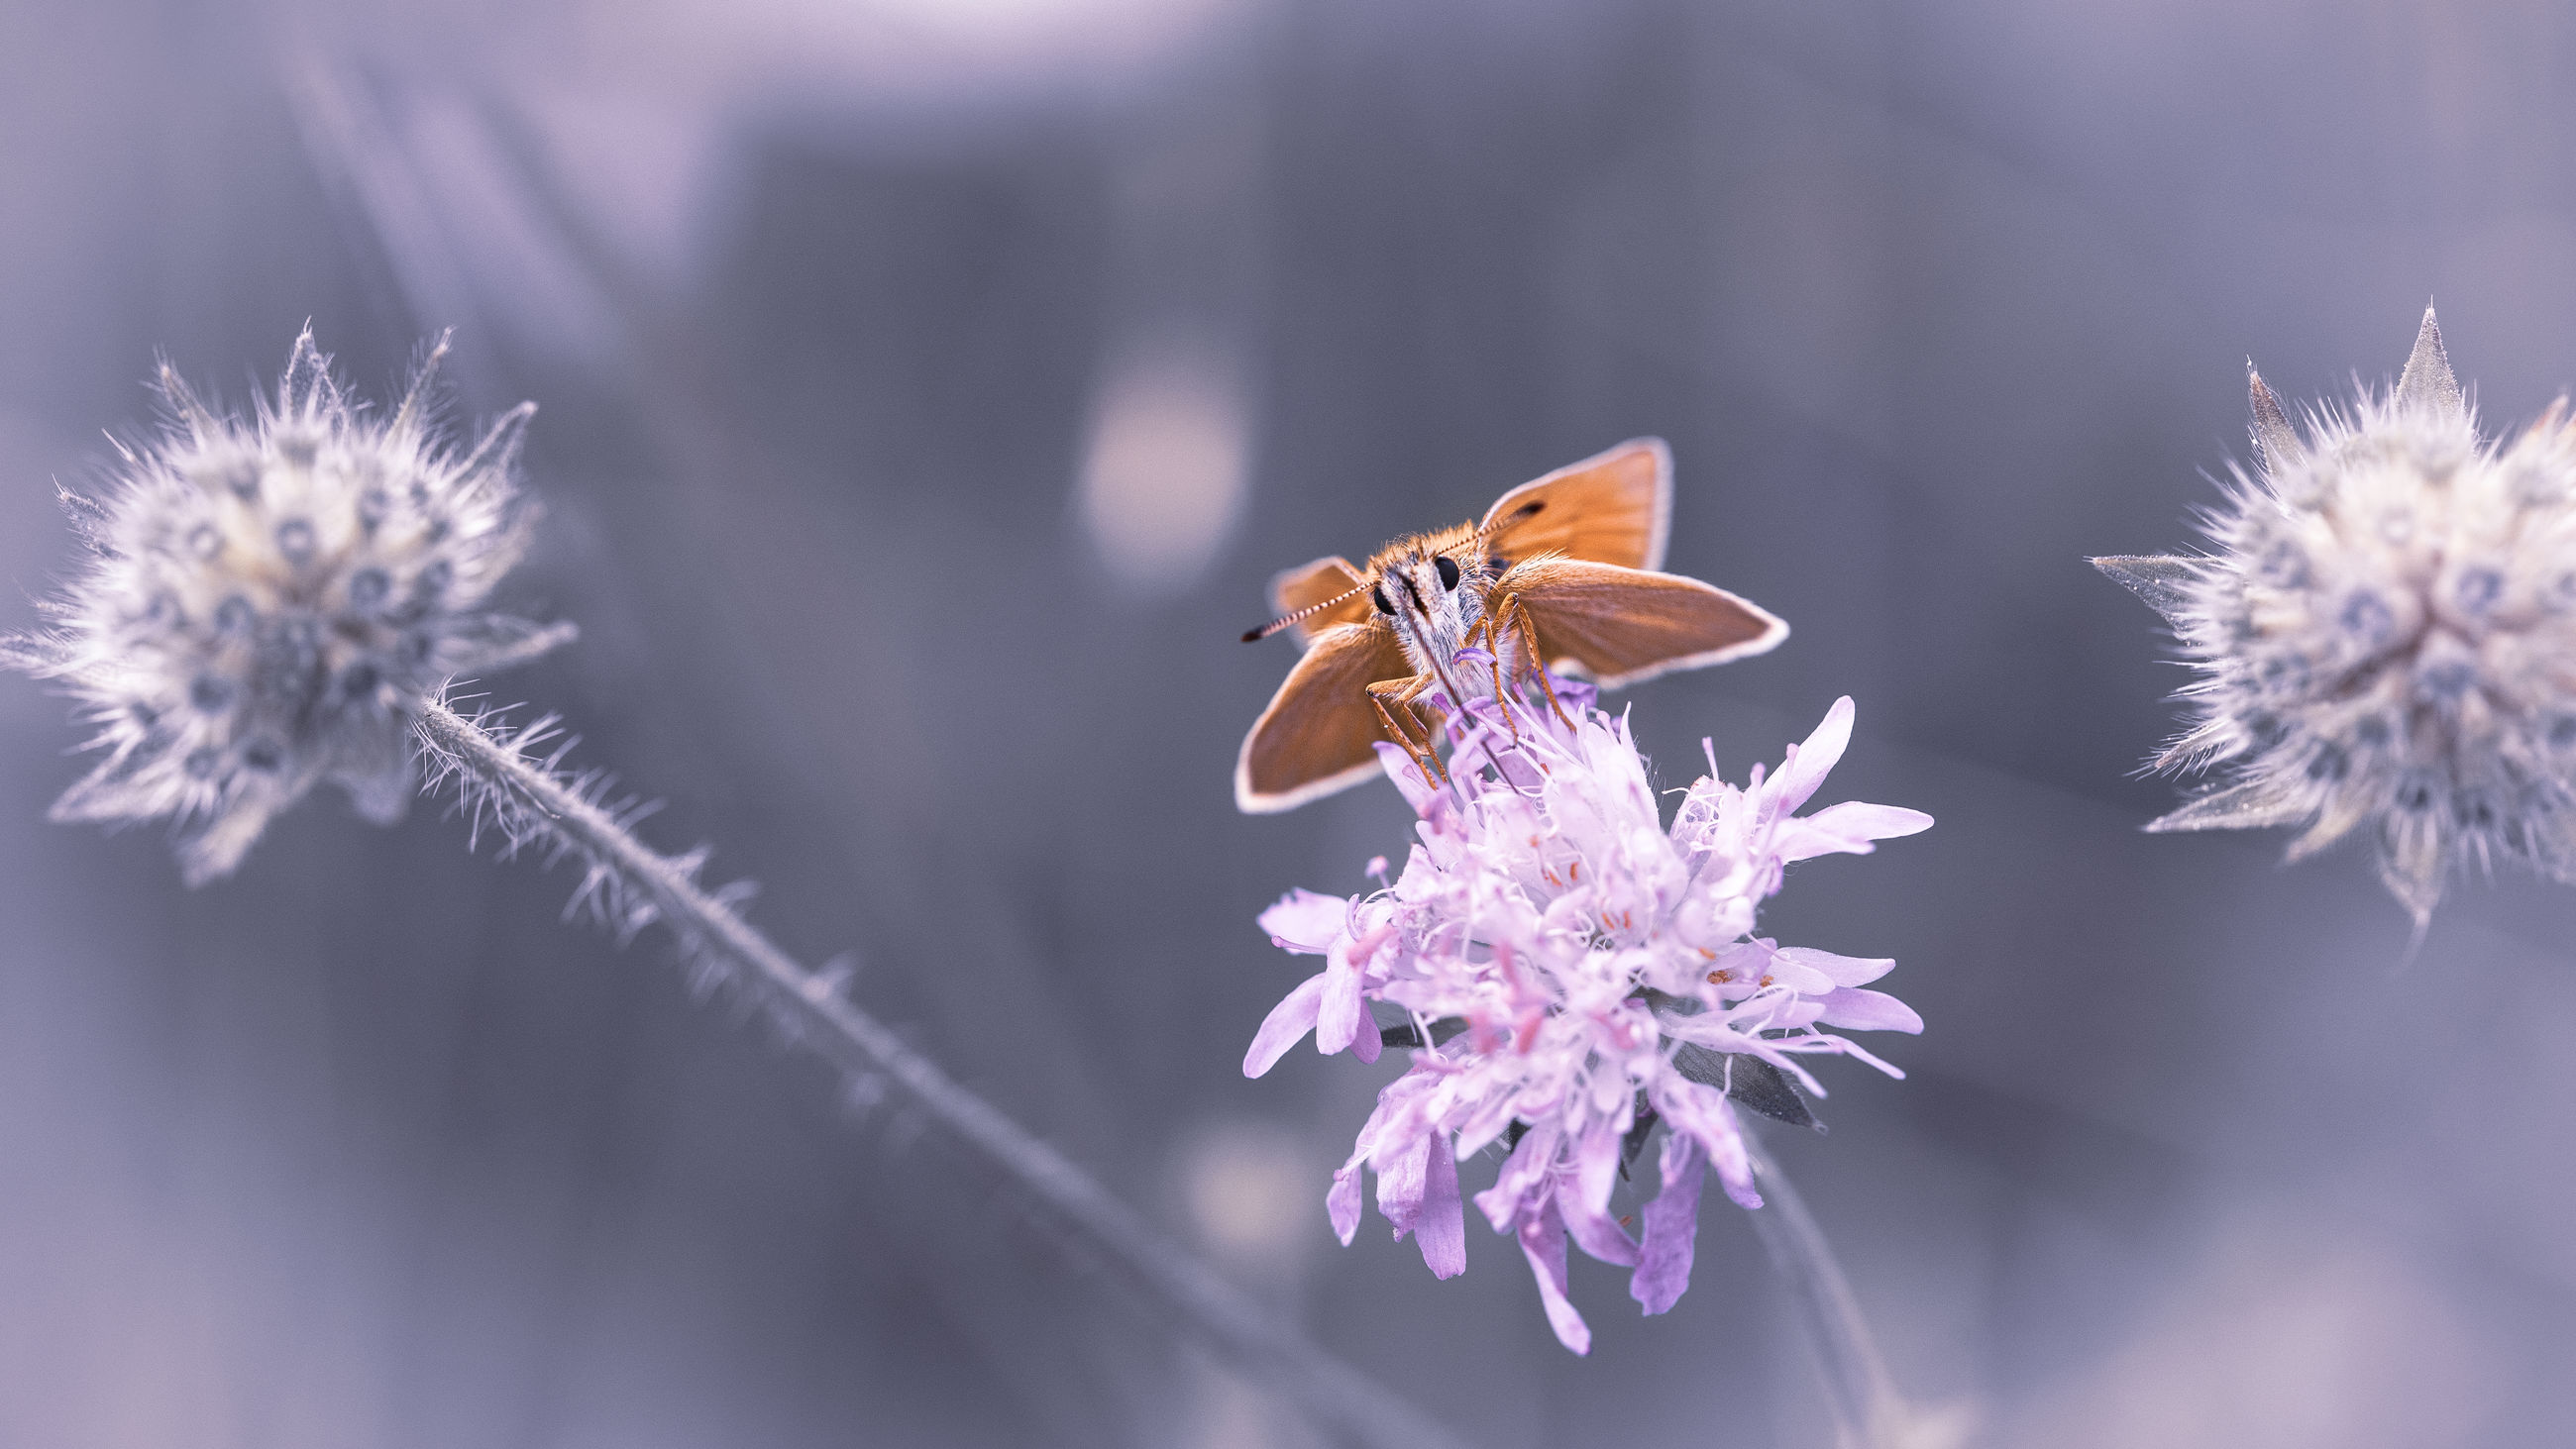 flowering plant, fragility, flower, vulnerability, plant, beauty in nature, insect, freshness, invertebrate, close-up, flower head, petal, one animal, nature, animals in the wild, inflorescence, pollination, growth, animal themes, animal, no people, outdoors, purple, pollen